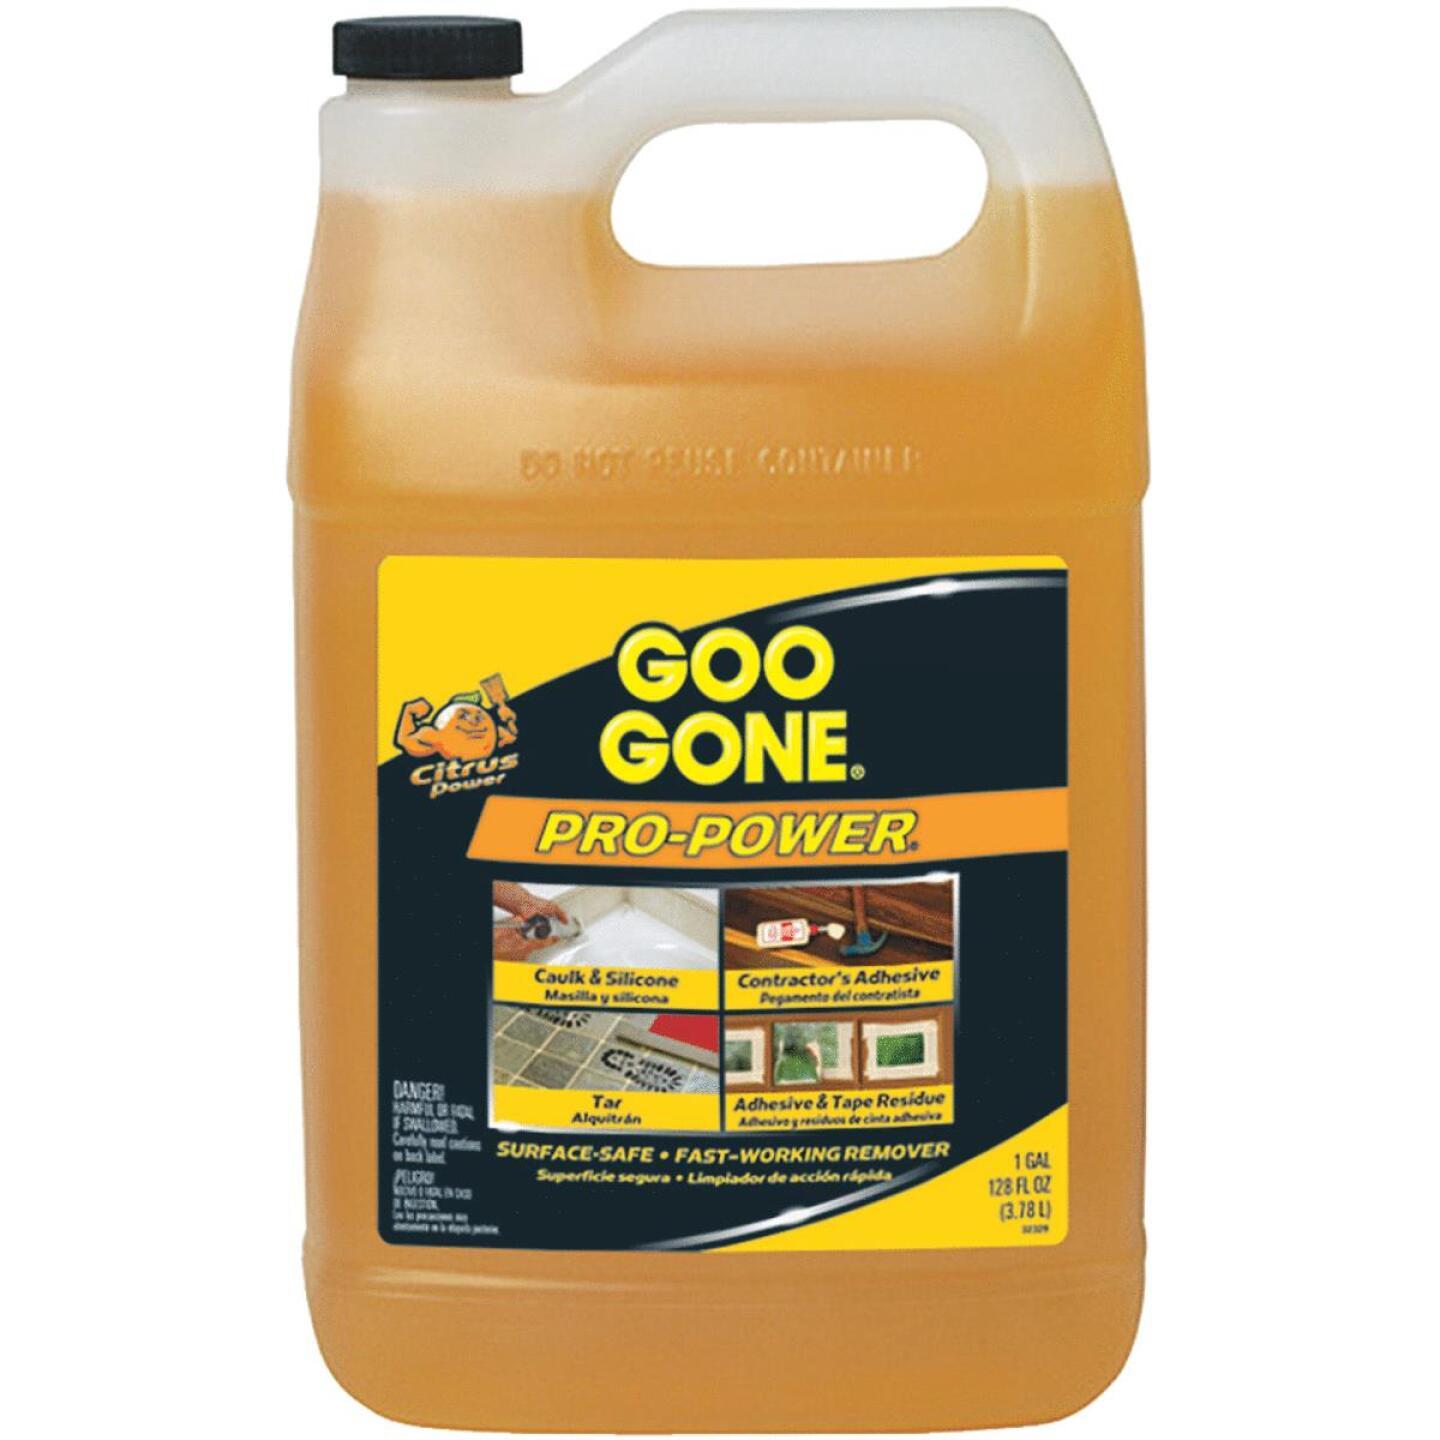 Goo Gone 1 Gal. Pro-Power Adhesive Remover Image 101